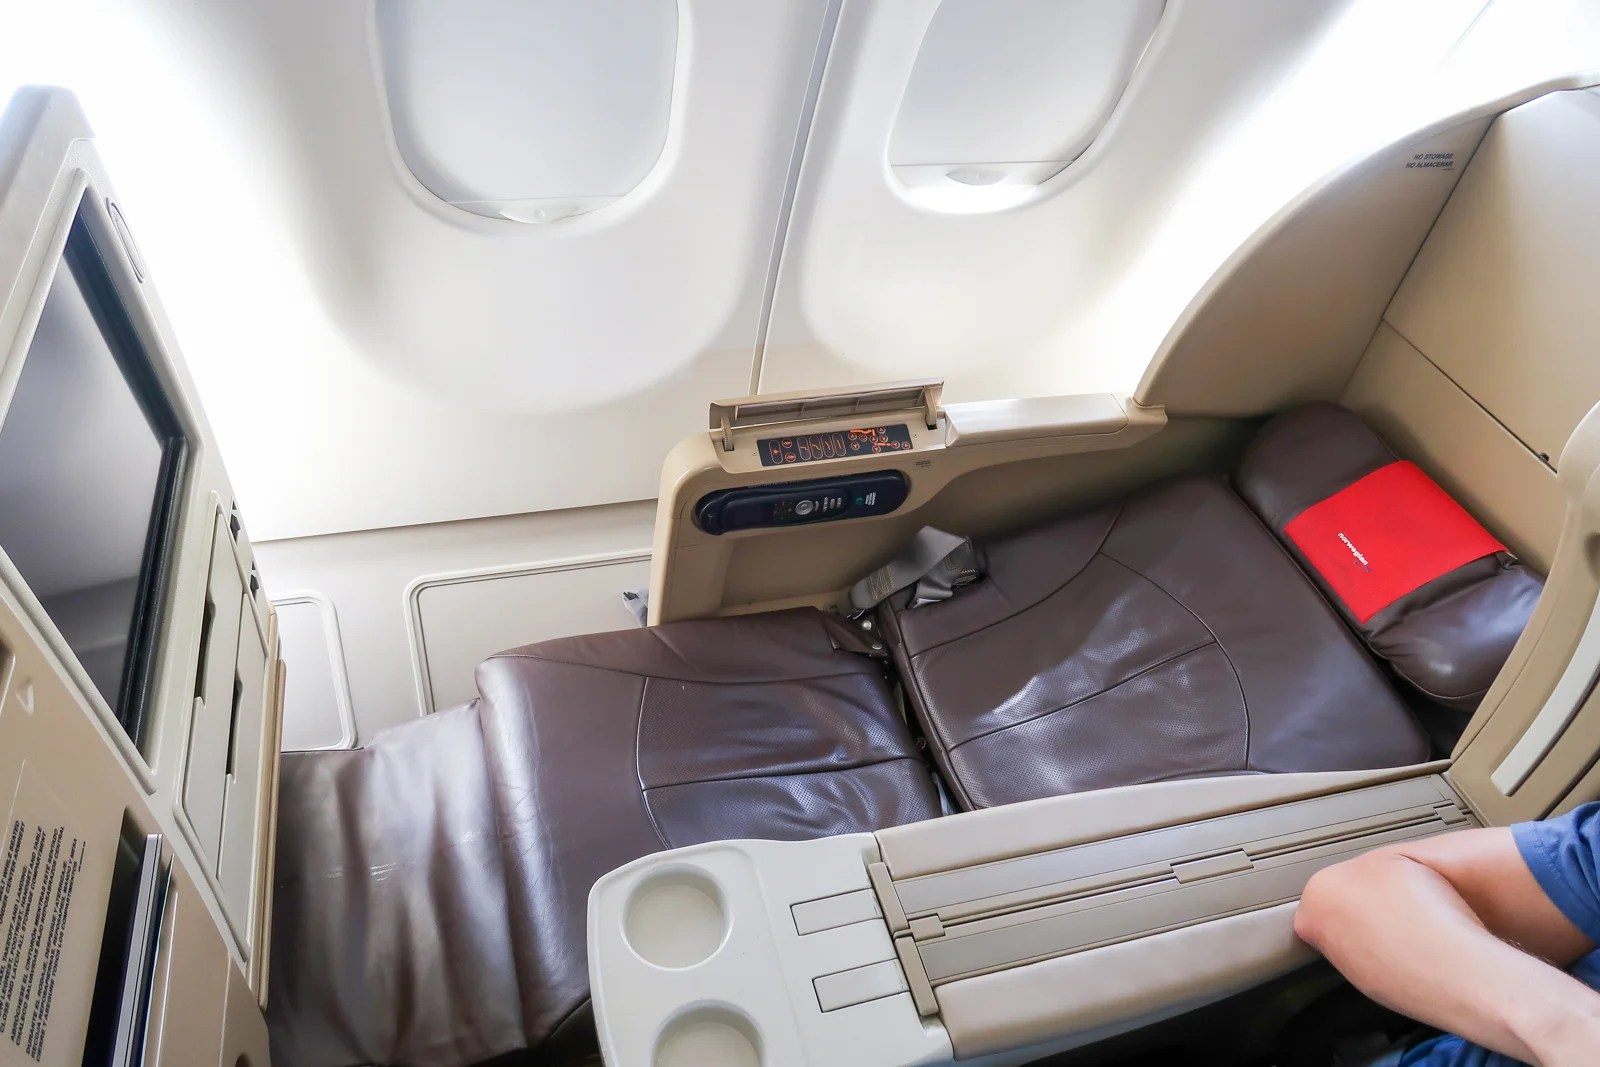 Review: Norwegian Premium Economy on the Leased Evelop A330